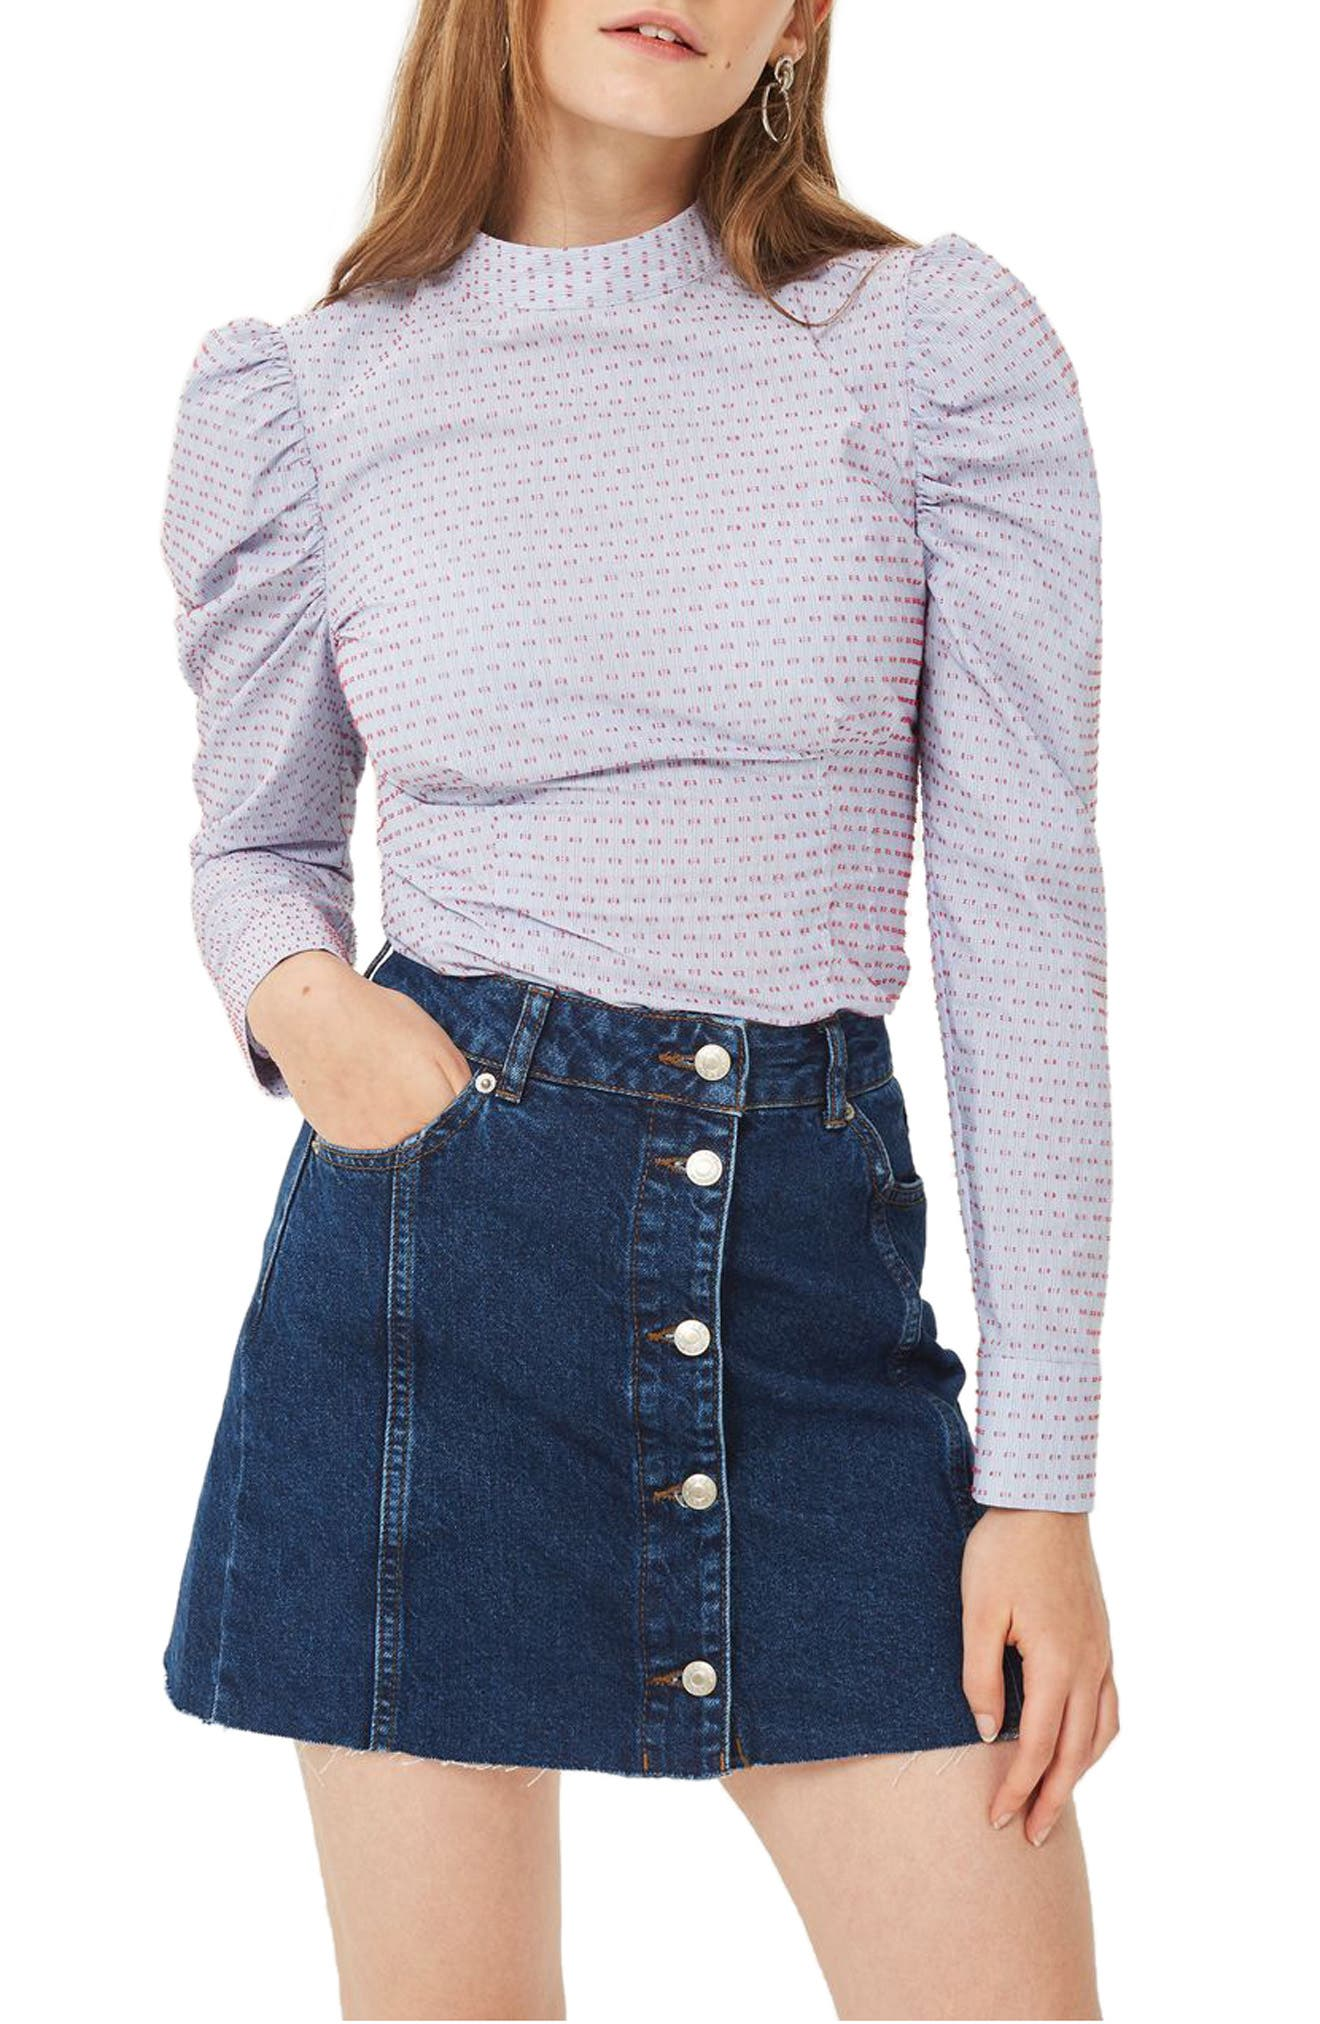 Topshop Button Denim Miniskirt